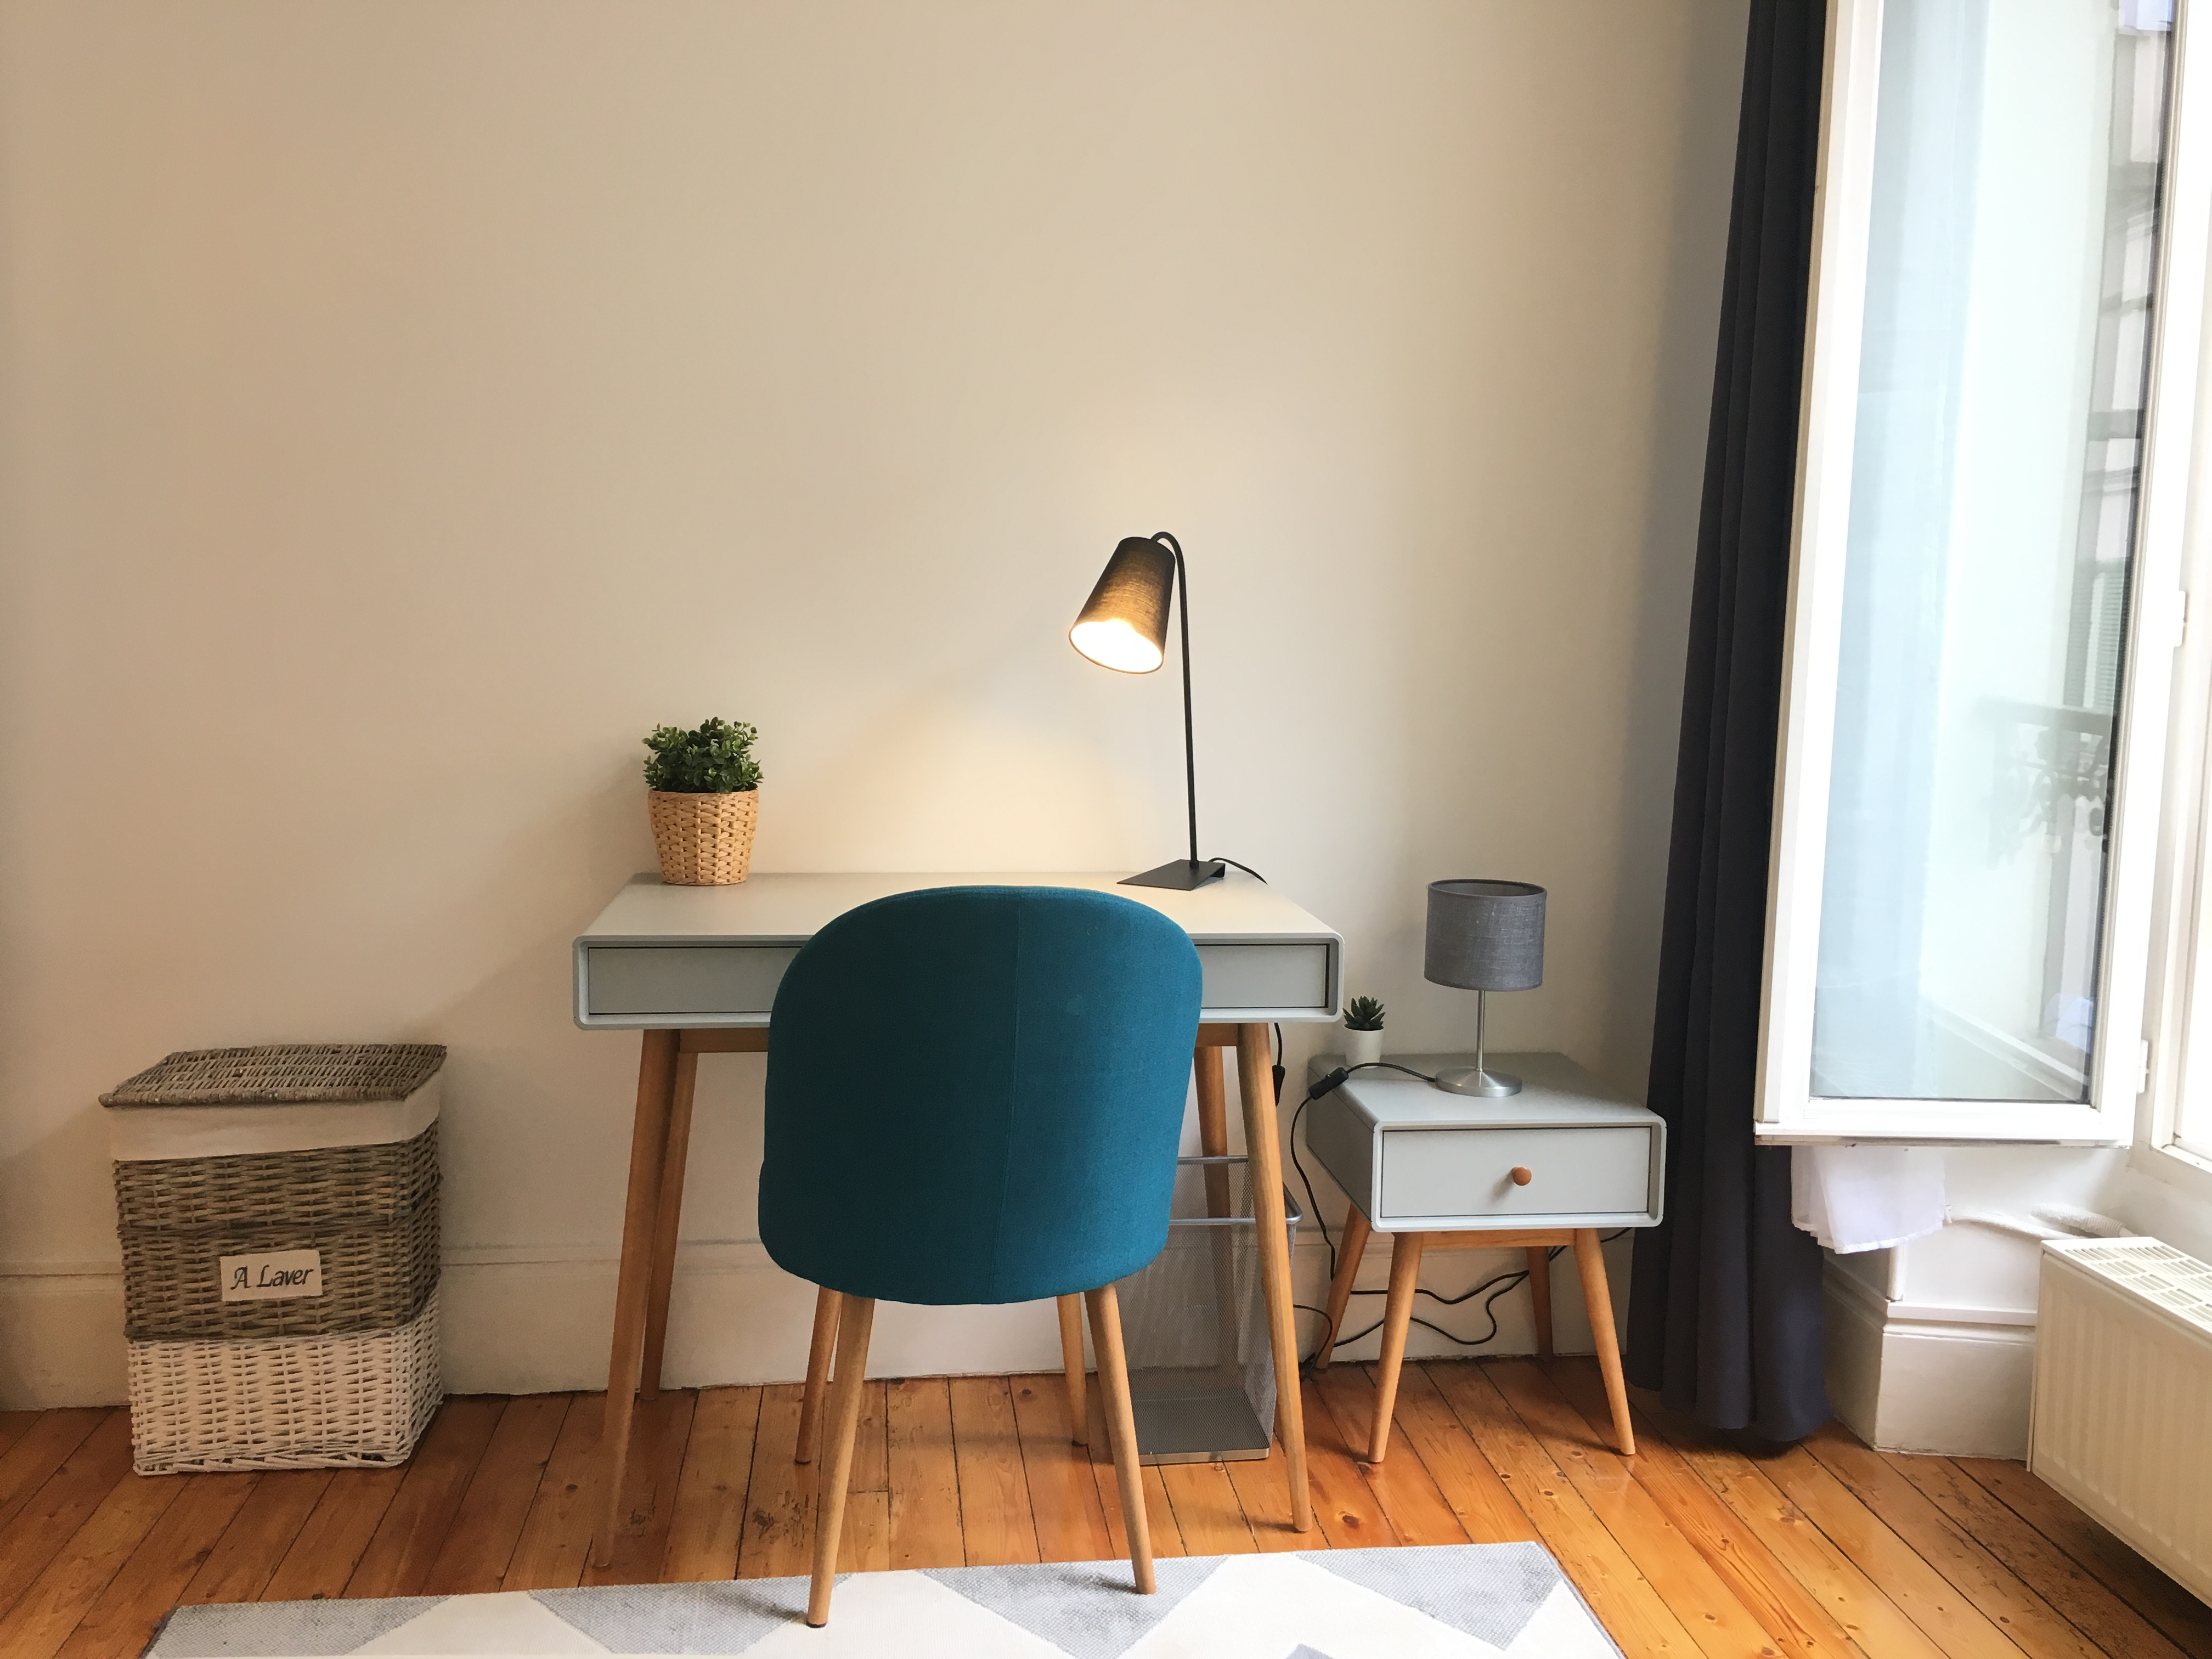 Rent Flat Apartment Fontainebleau Insead MBA housing Paris Desk